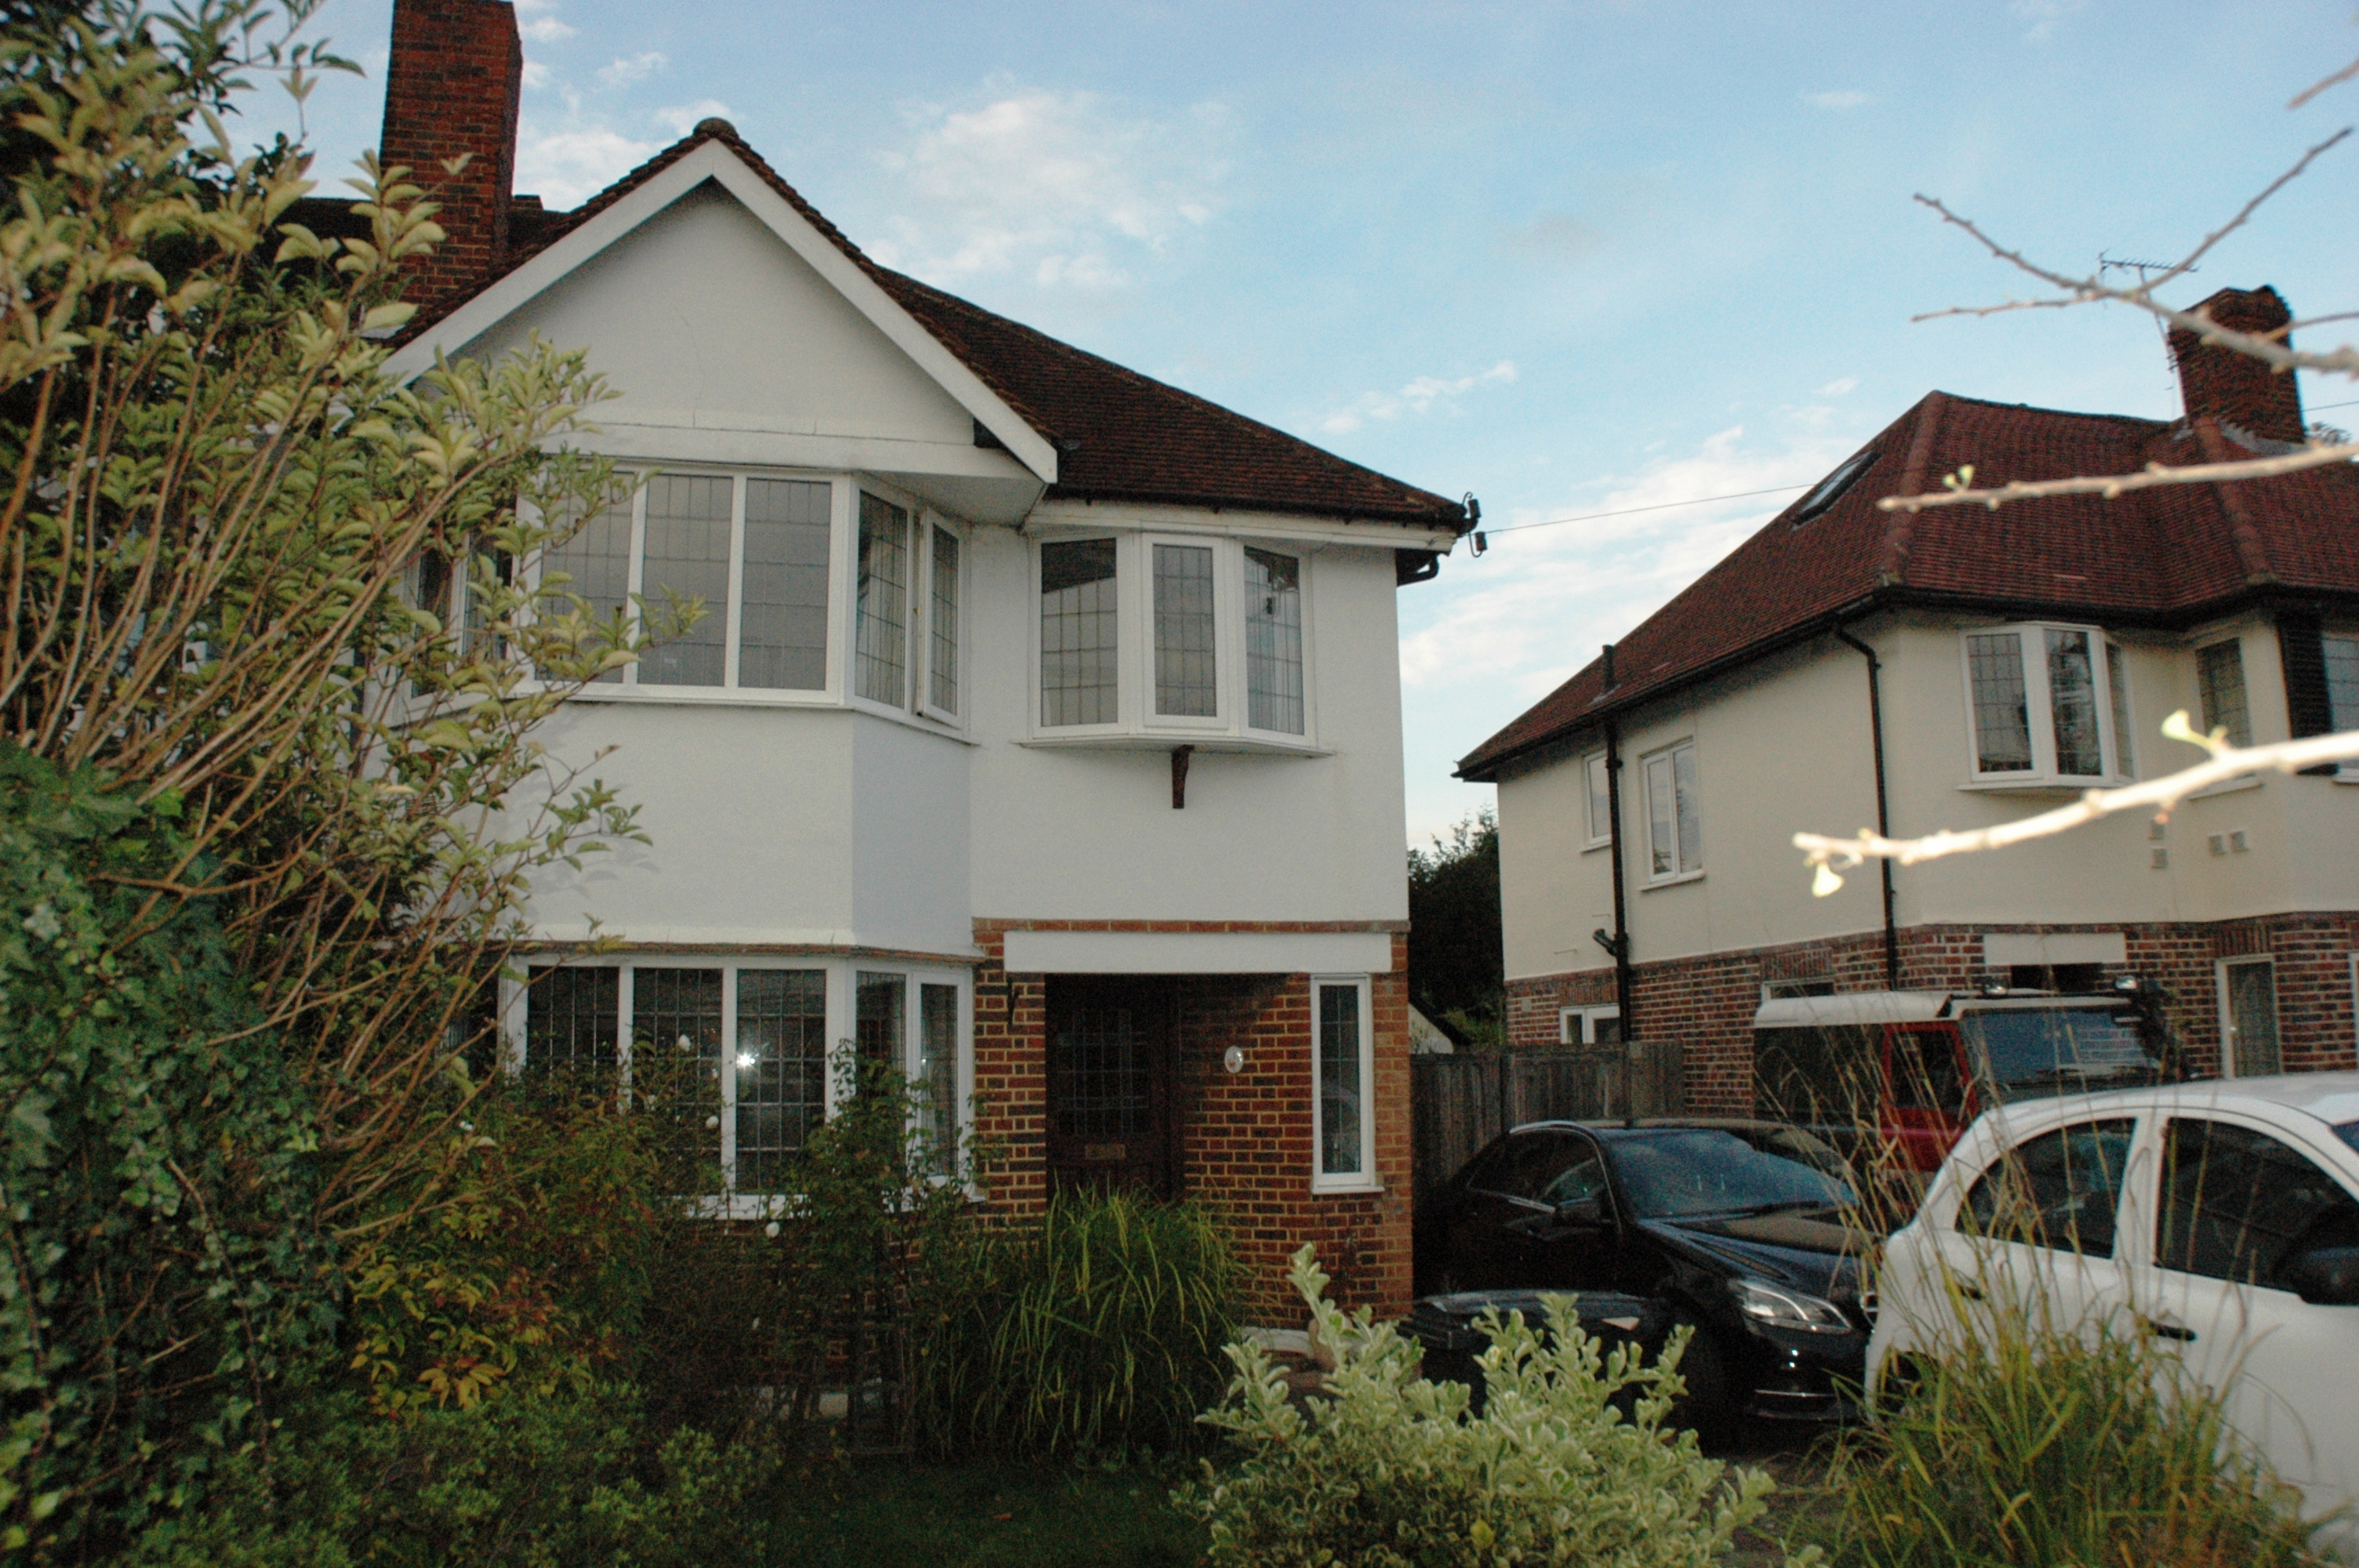 Stoneleigh Park Road, Epsom